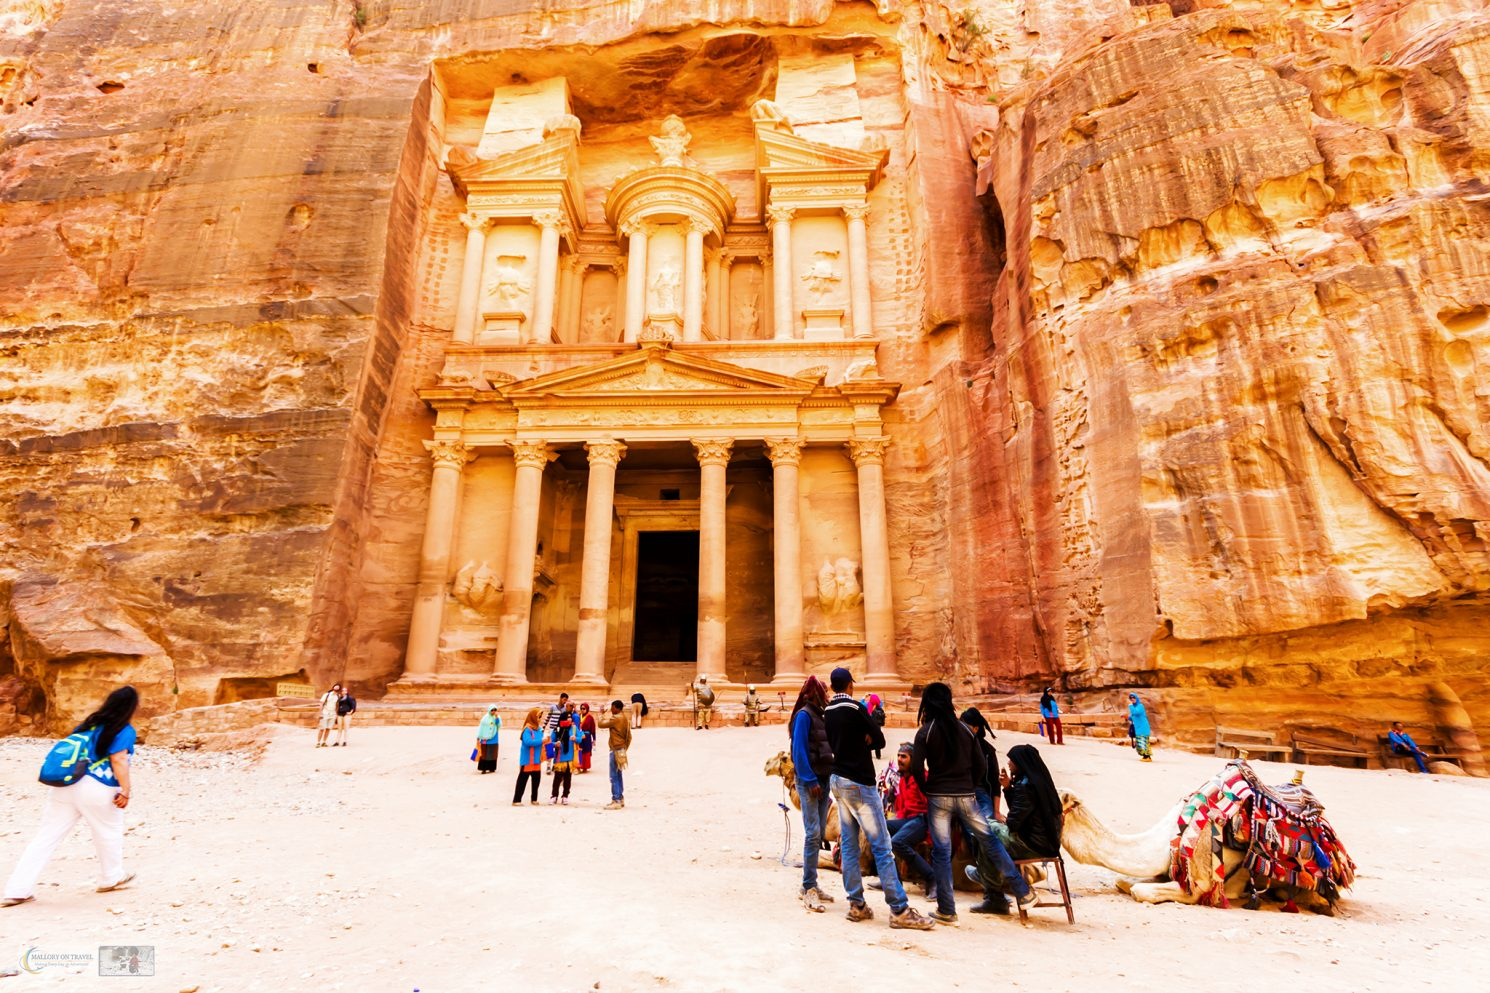 The sandstone Treasury in the Nabateaen city of Petra in south Jordan on Mallory on Travel adventure travel, photography, travel Iain Mallory_Jordan 001-8